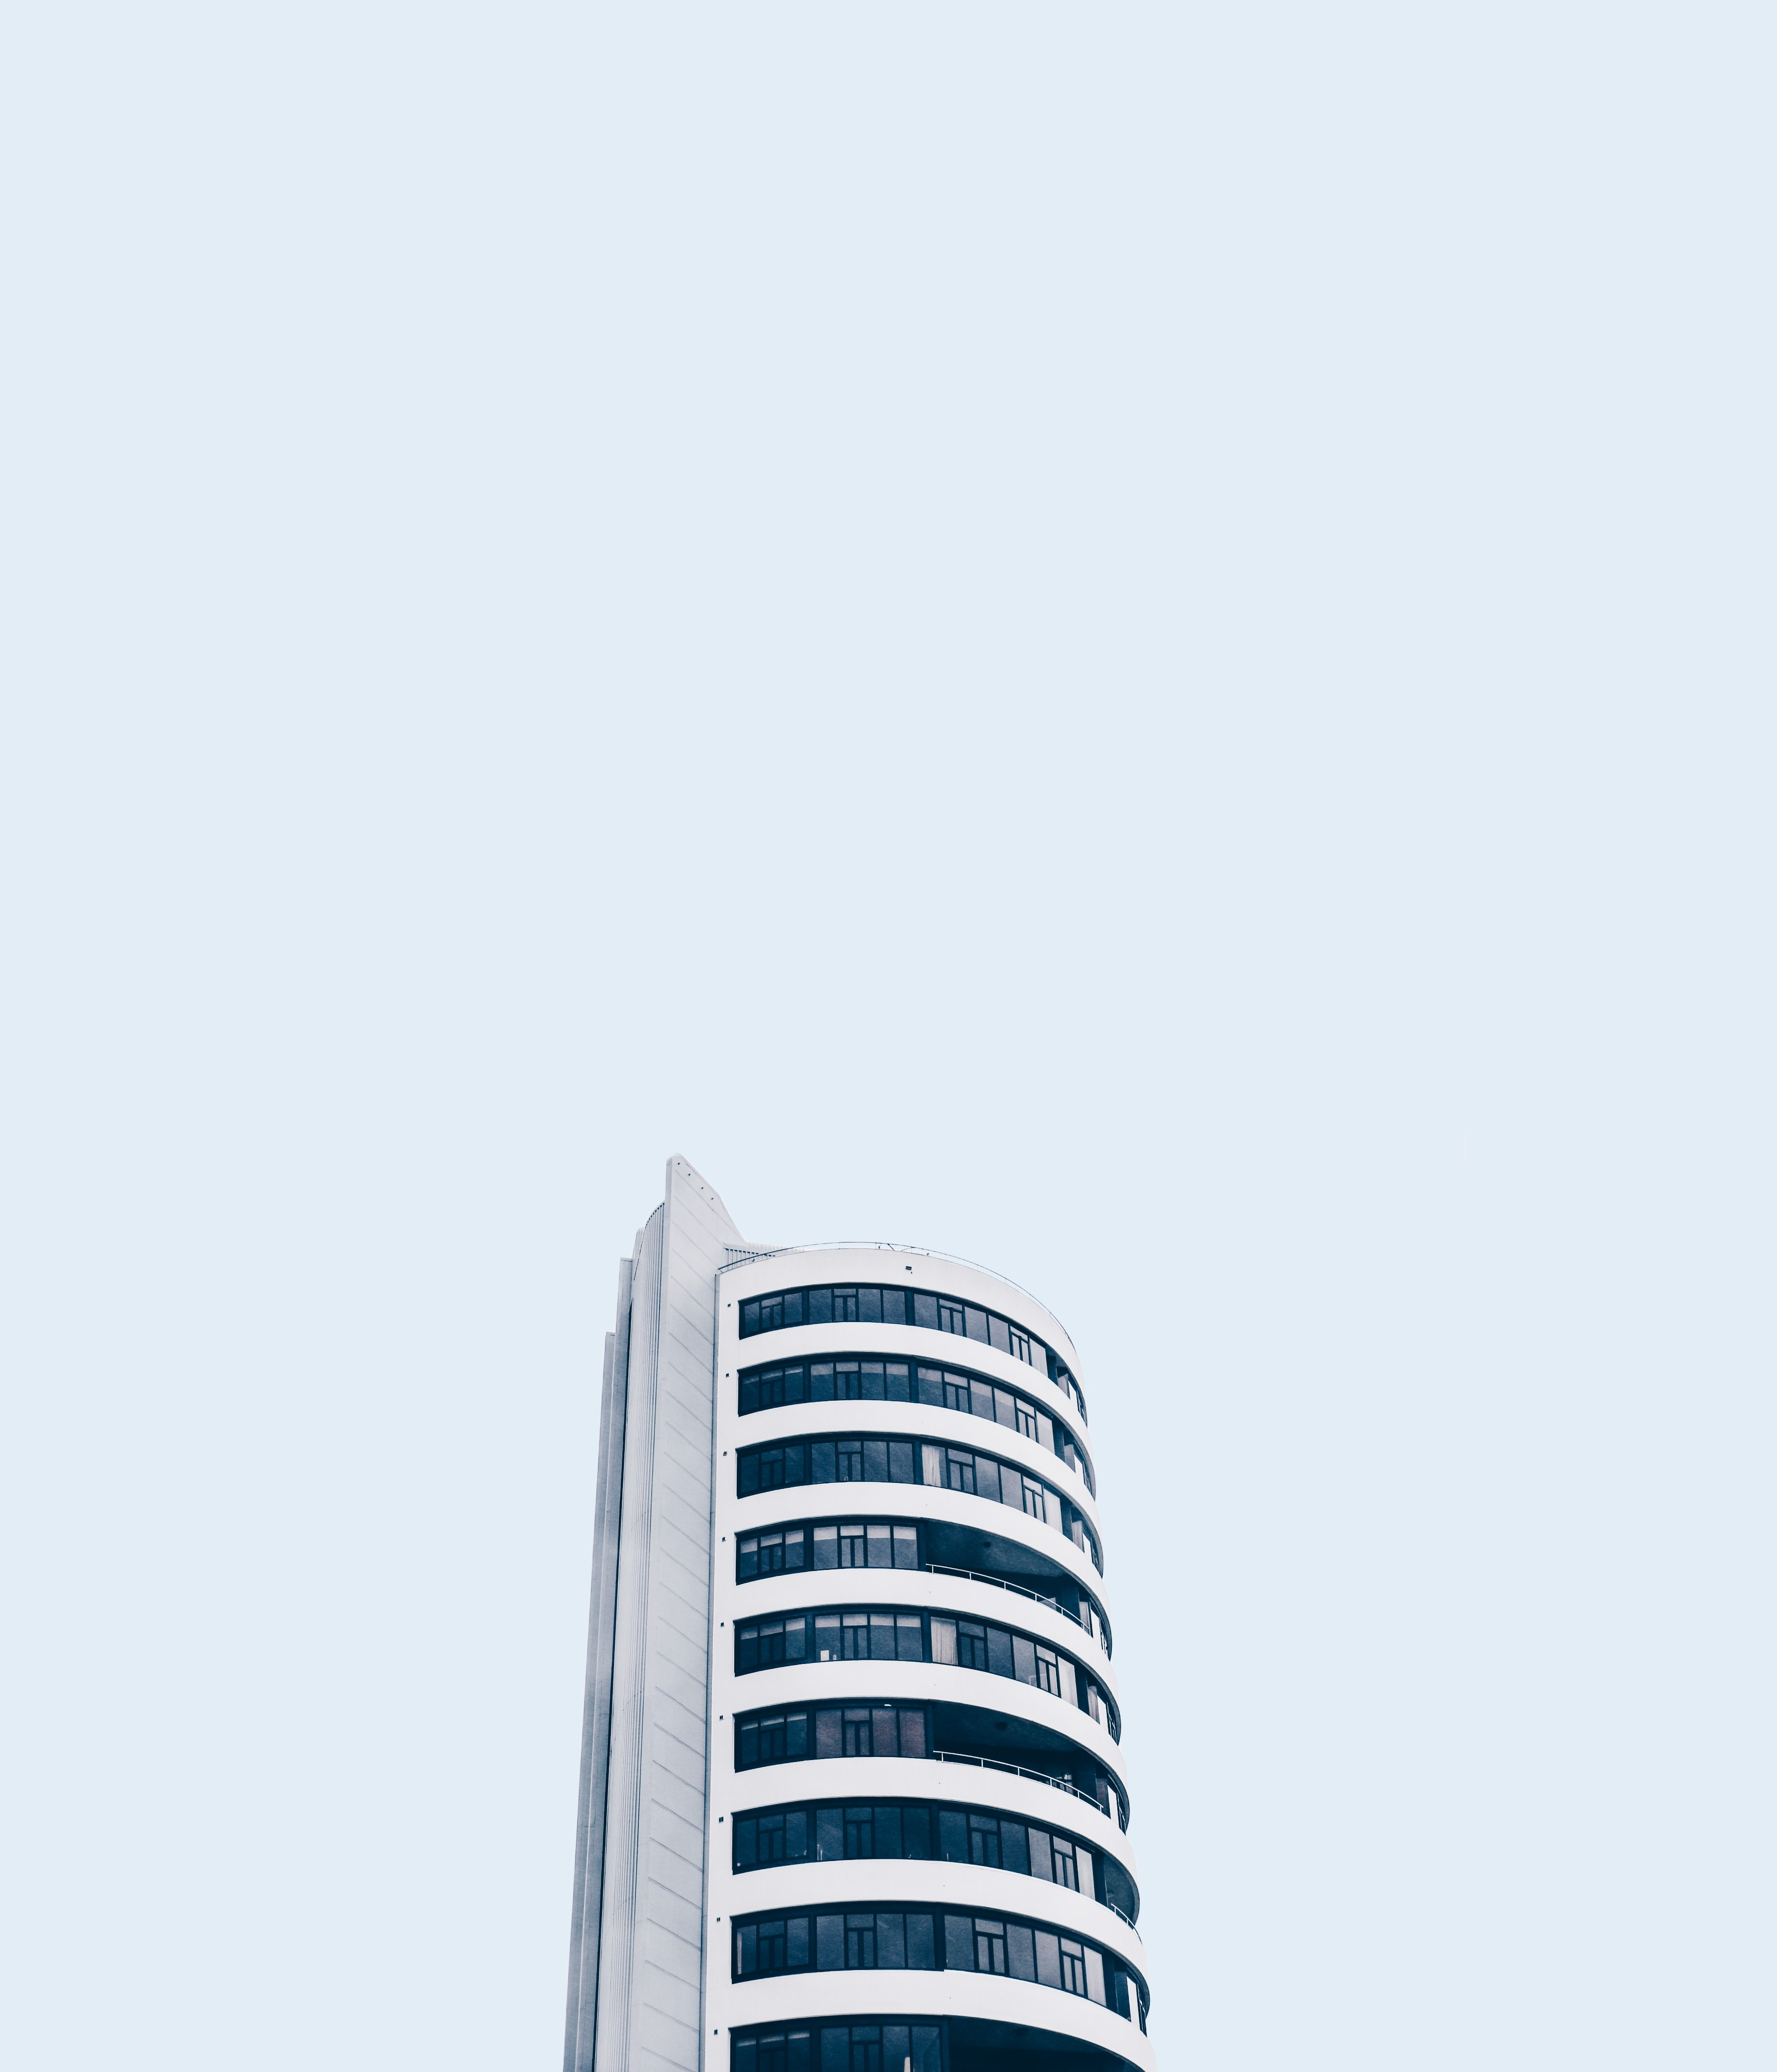 low angle photo of white high rise building under white sky at daytime